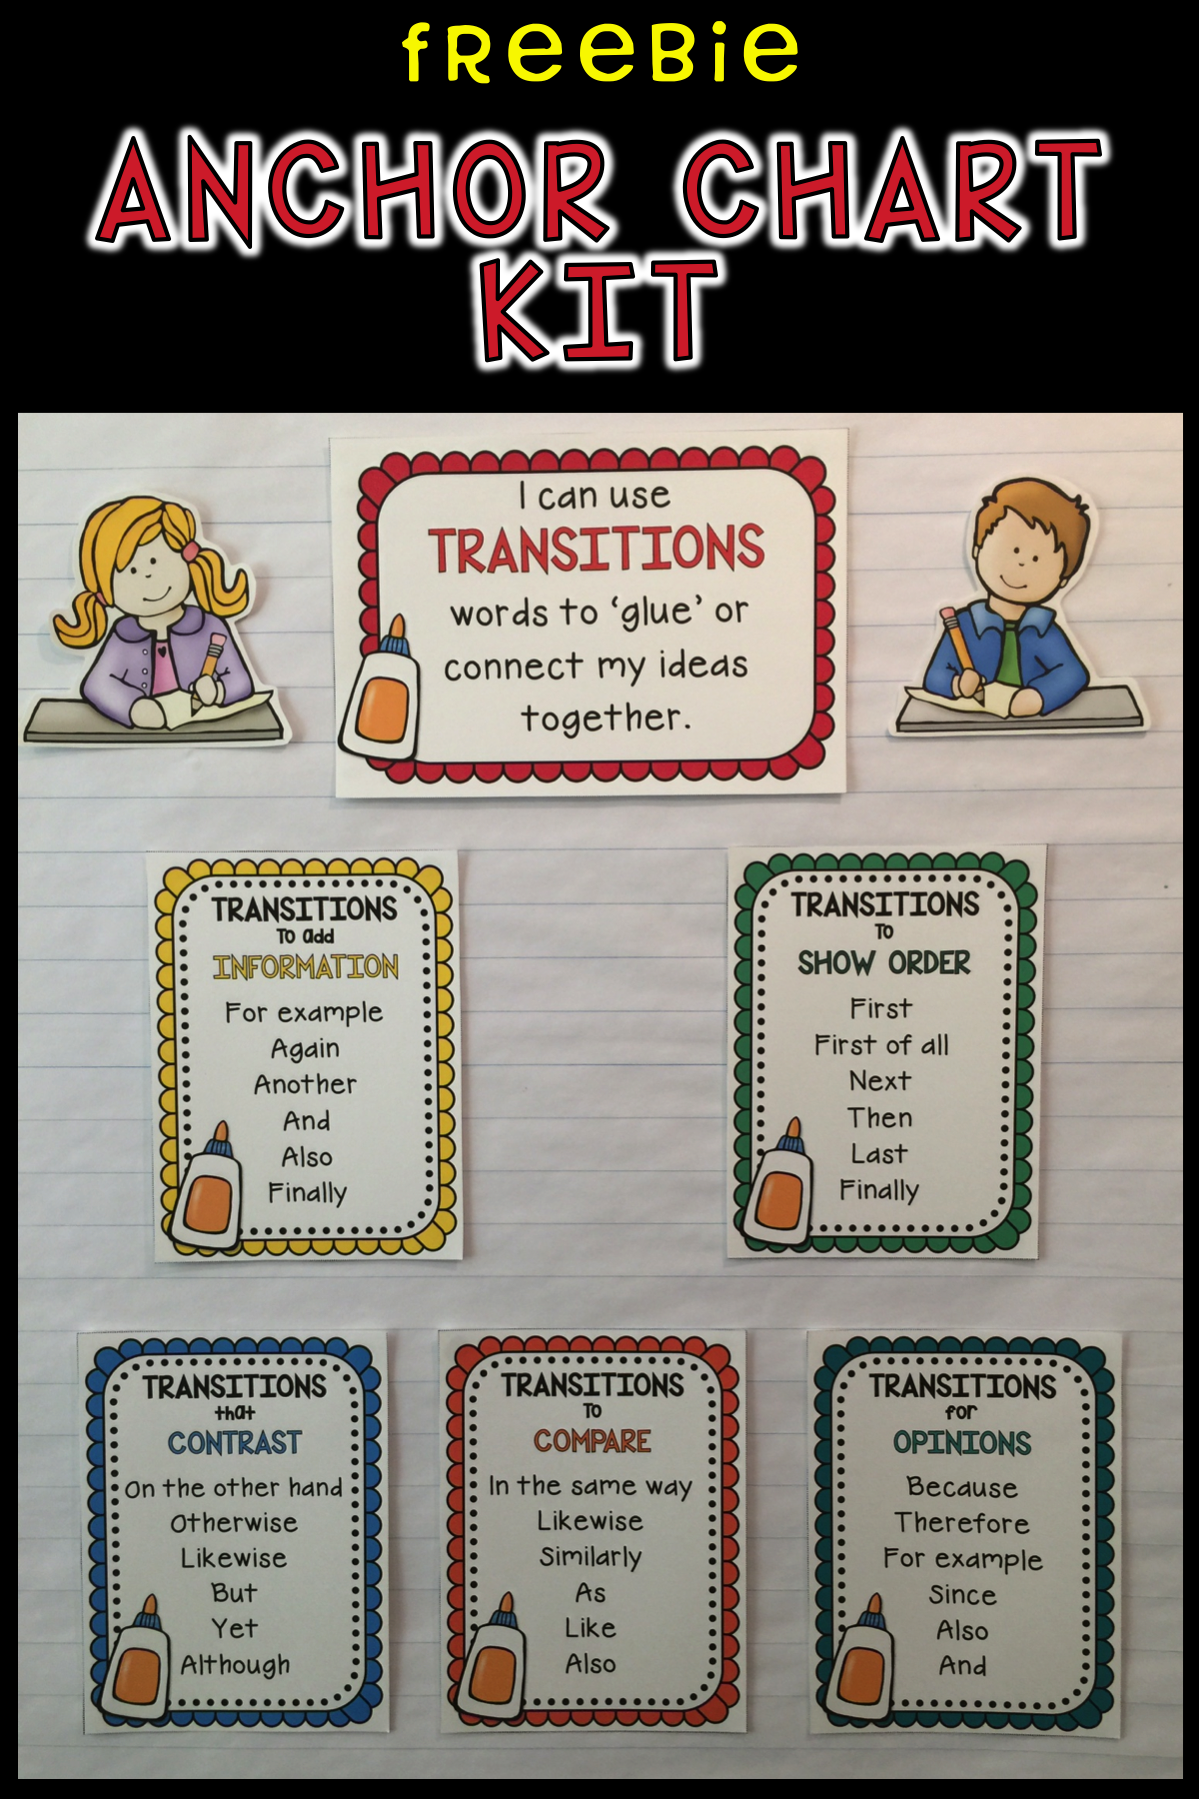 Transition Words In Writing Anchor Chart Kit